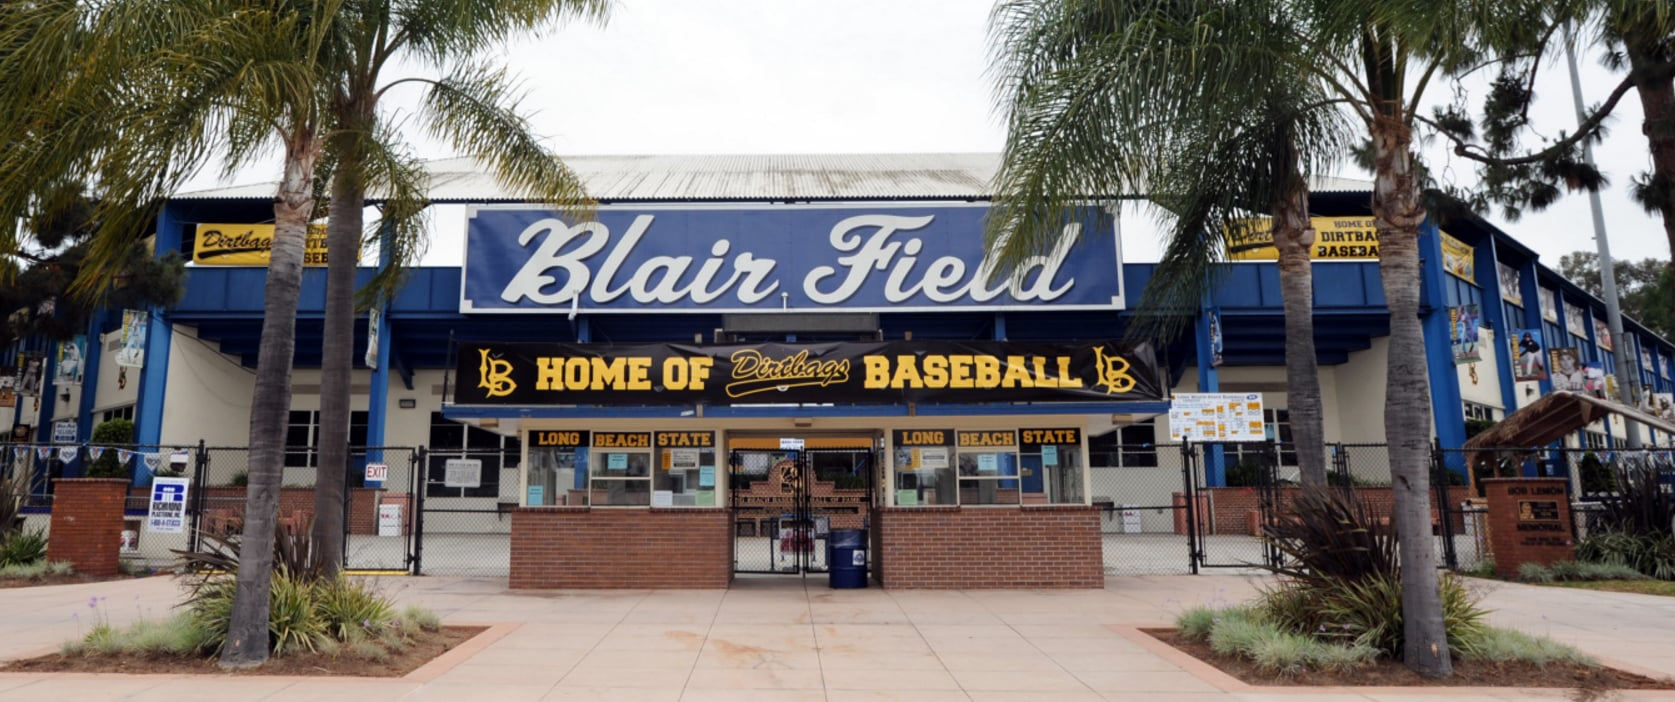 blair-field-long-beach-event-venue